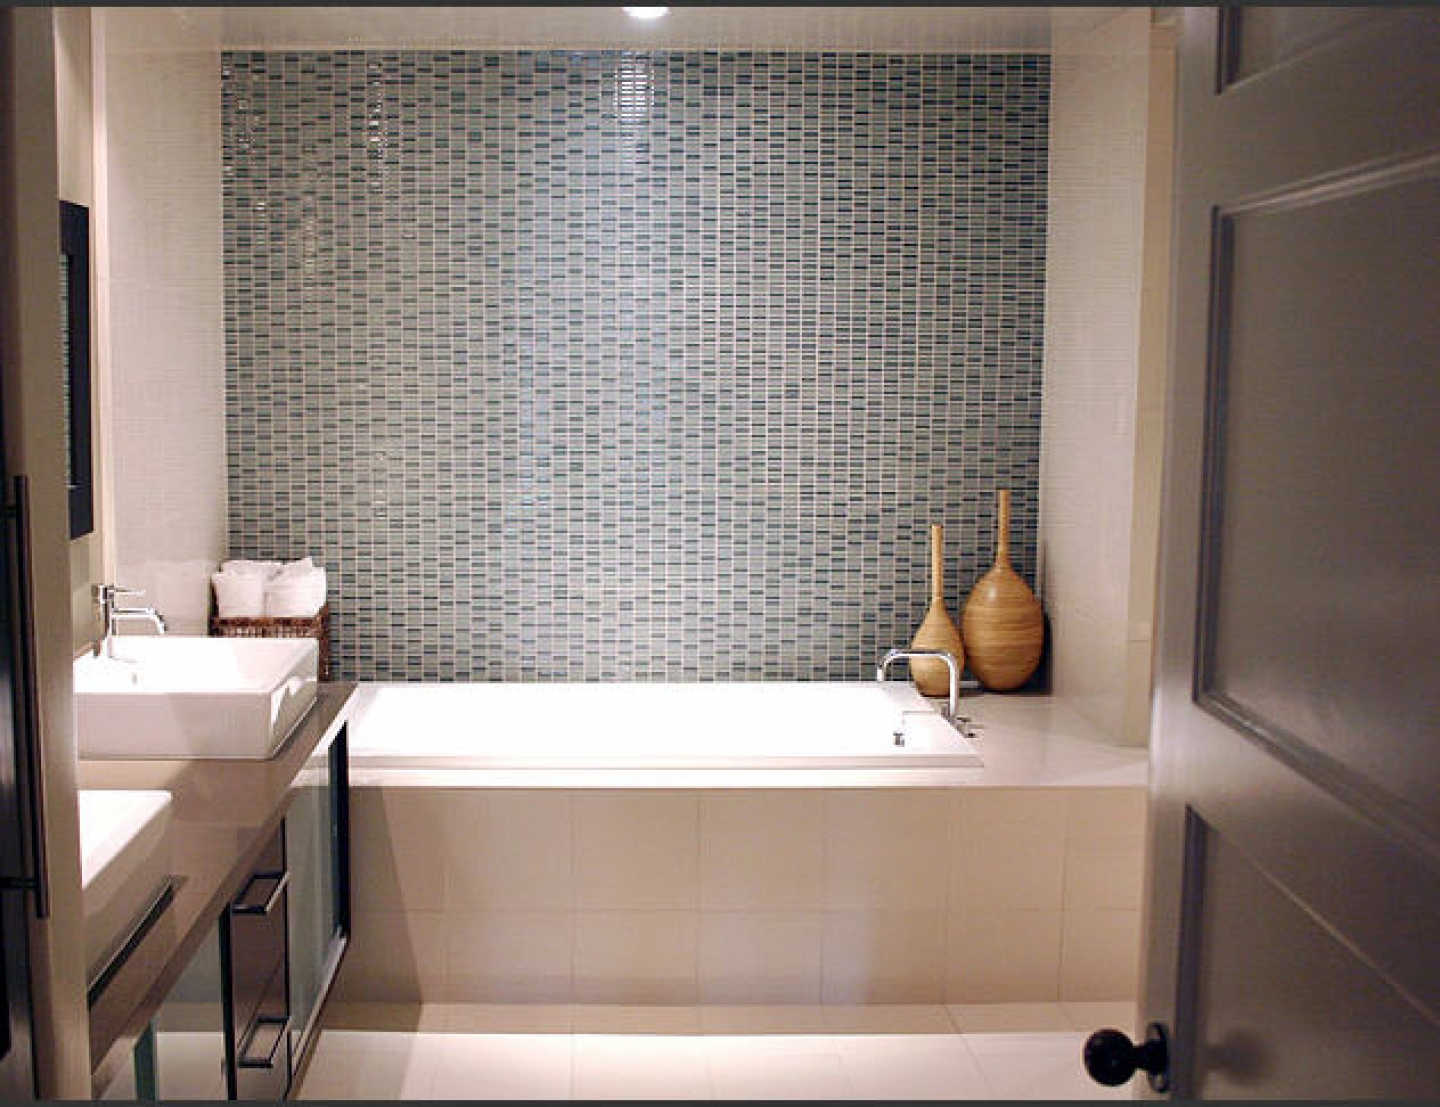 Small Bathroom Ideas Pictures With Tiles 30 beautiful pictures and ideas custom bathroom tile photos